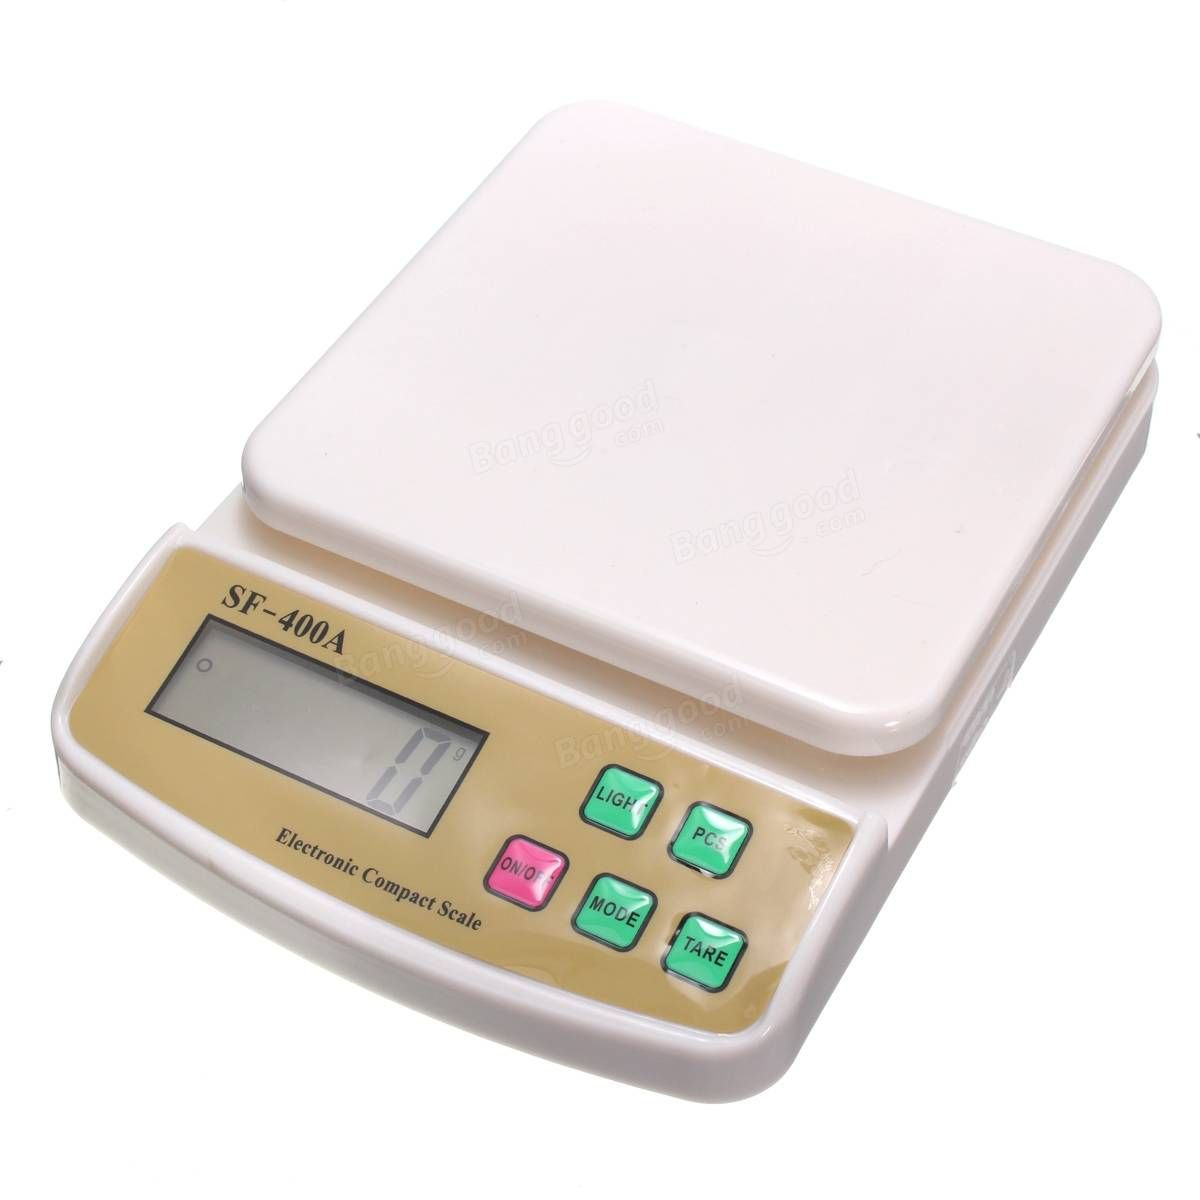 10kg/1g SF-400A Digital Scale For Household Electronic Kitchen Scale ...